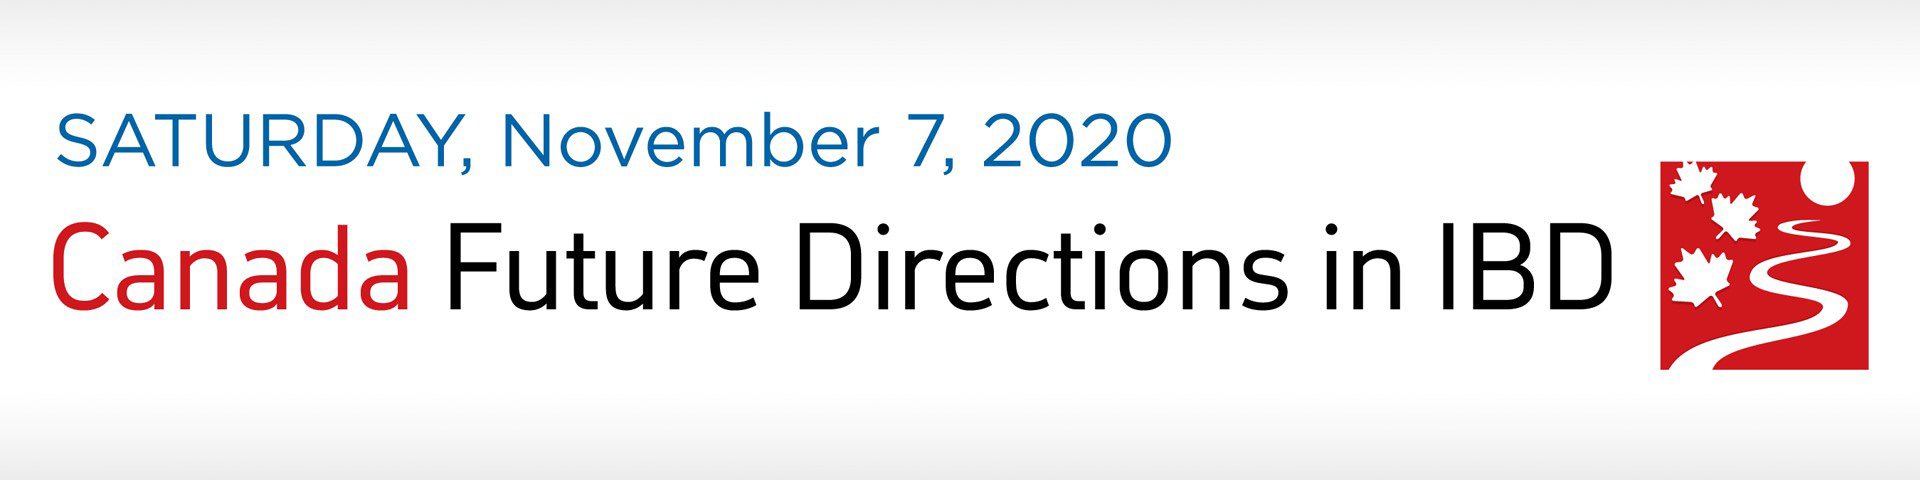 Canada Future Directions in IBD Banner